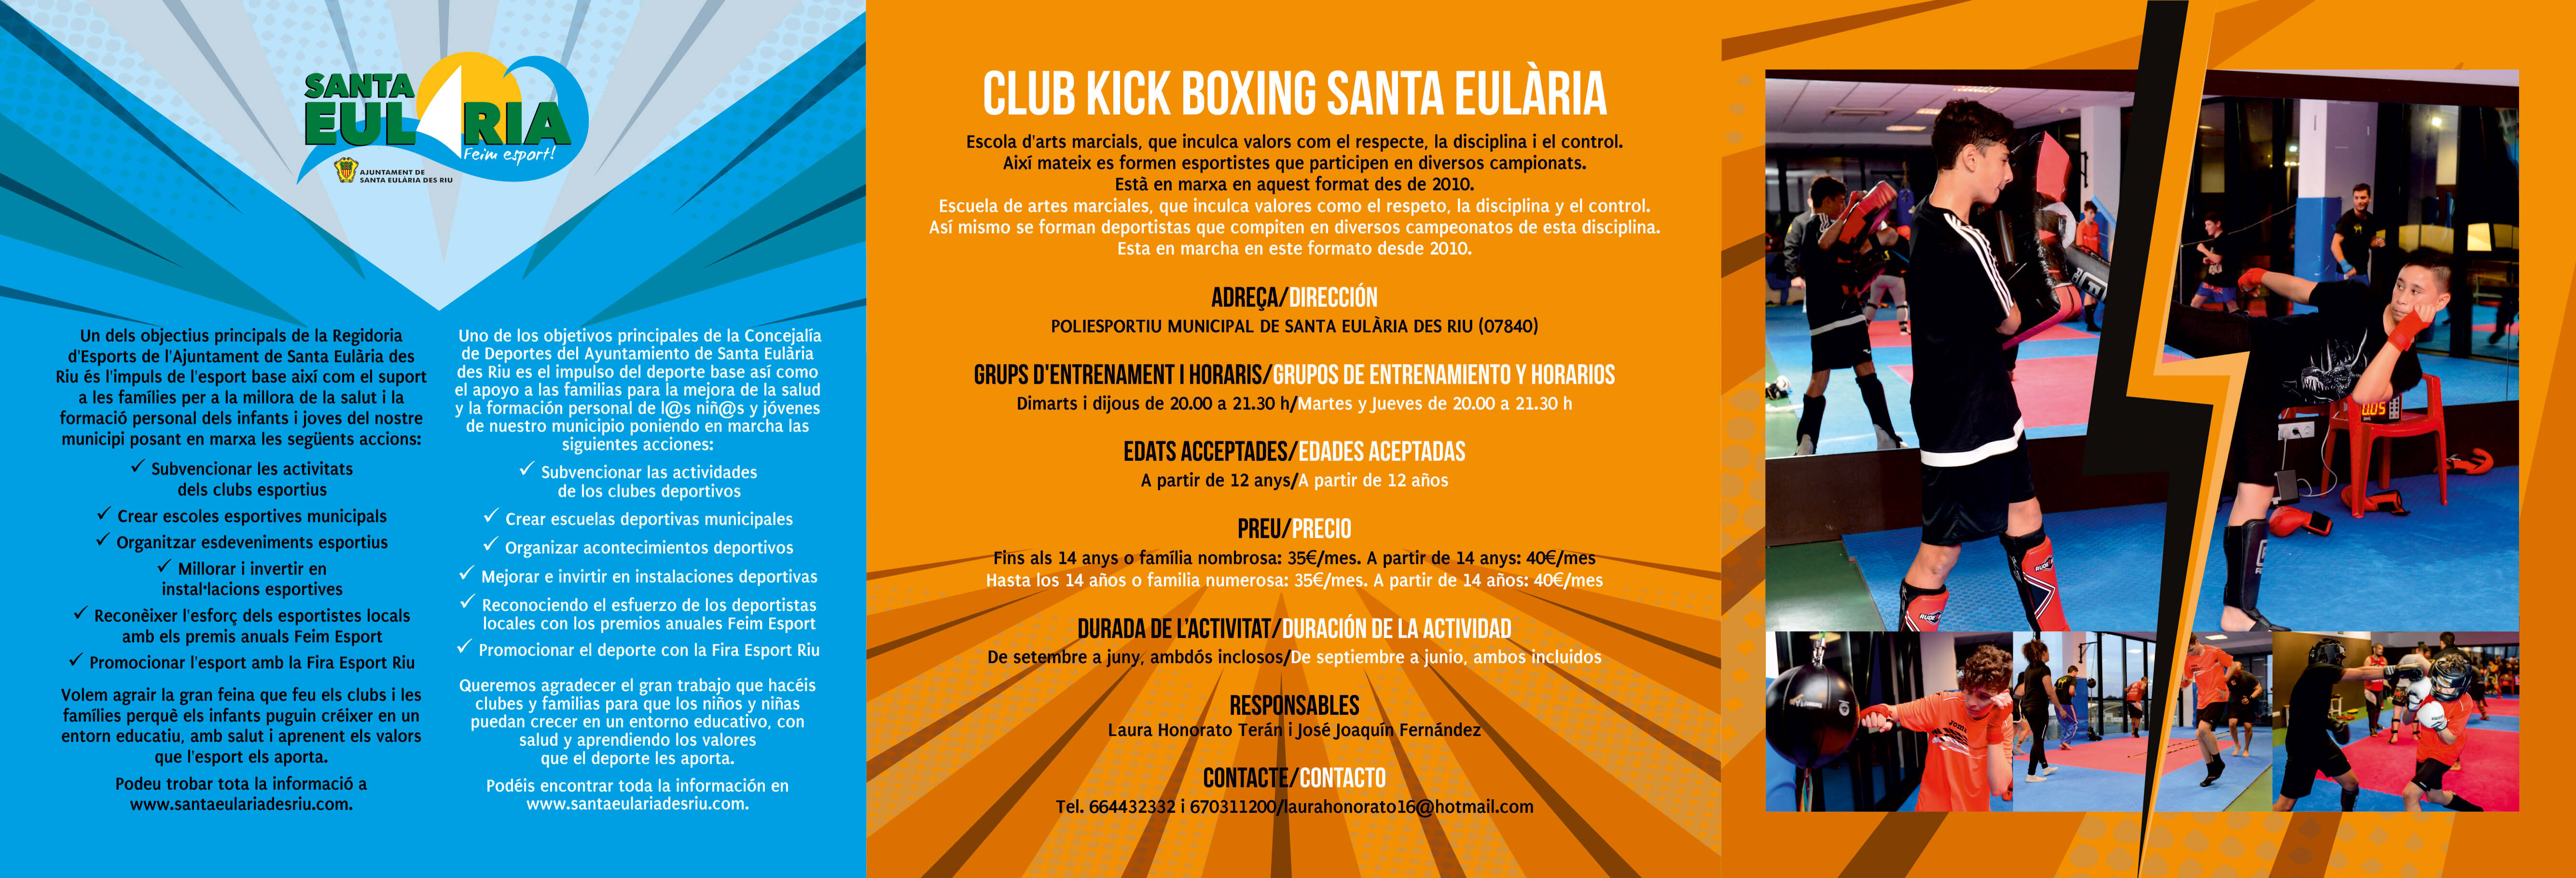 KICK BOXING 2